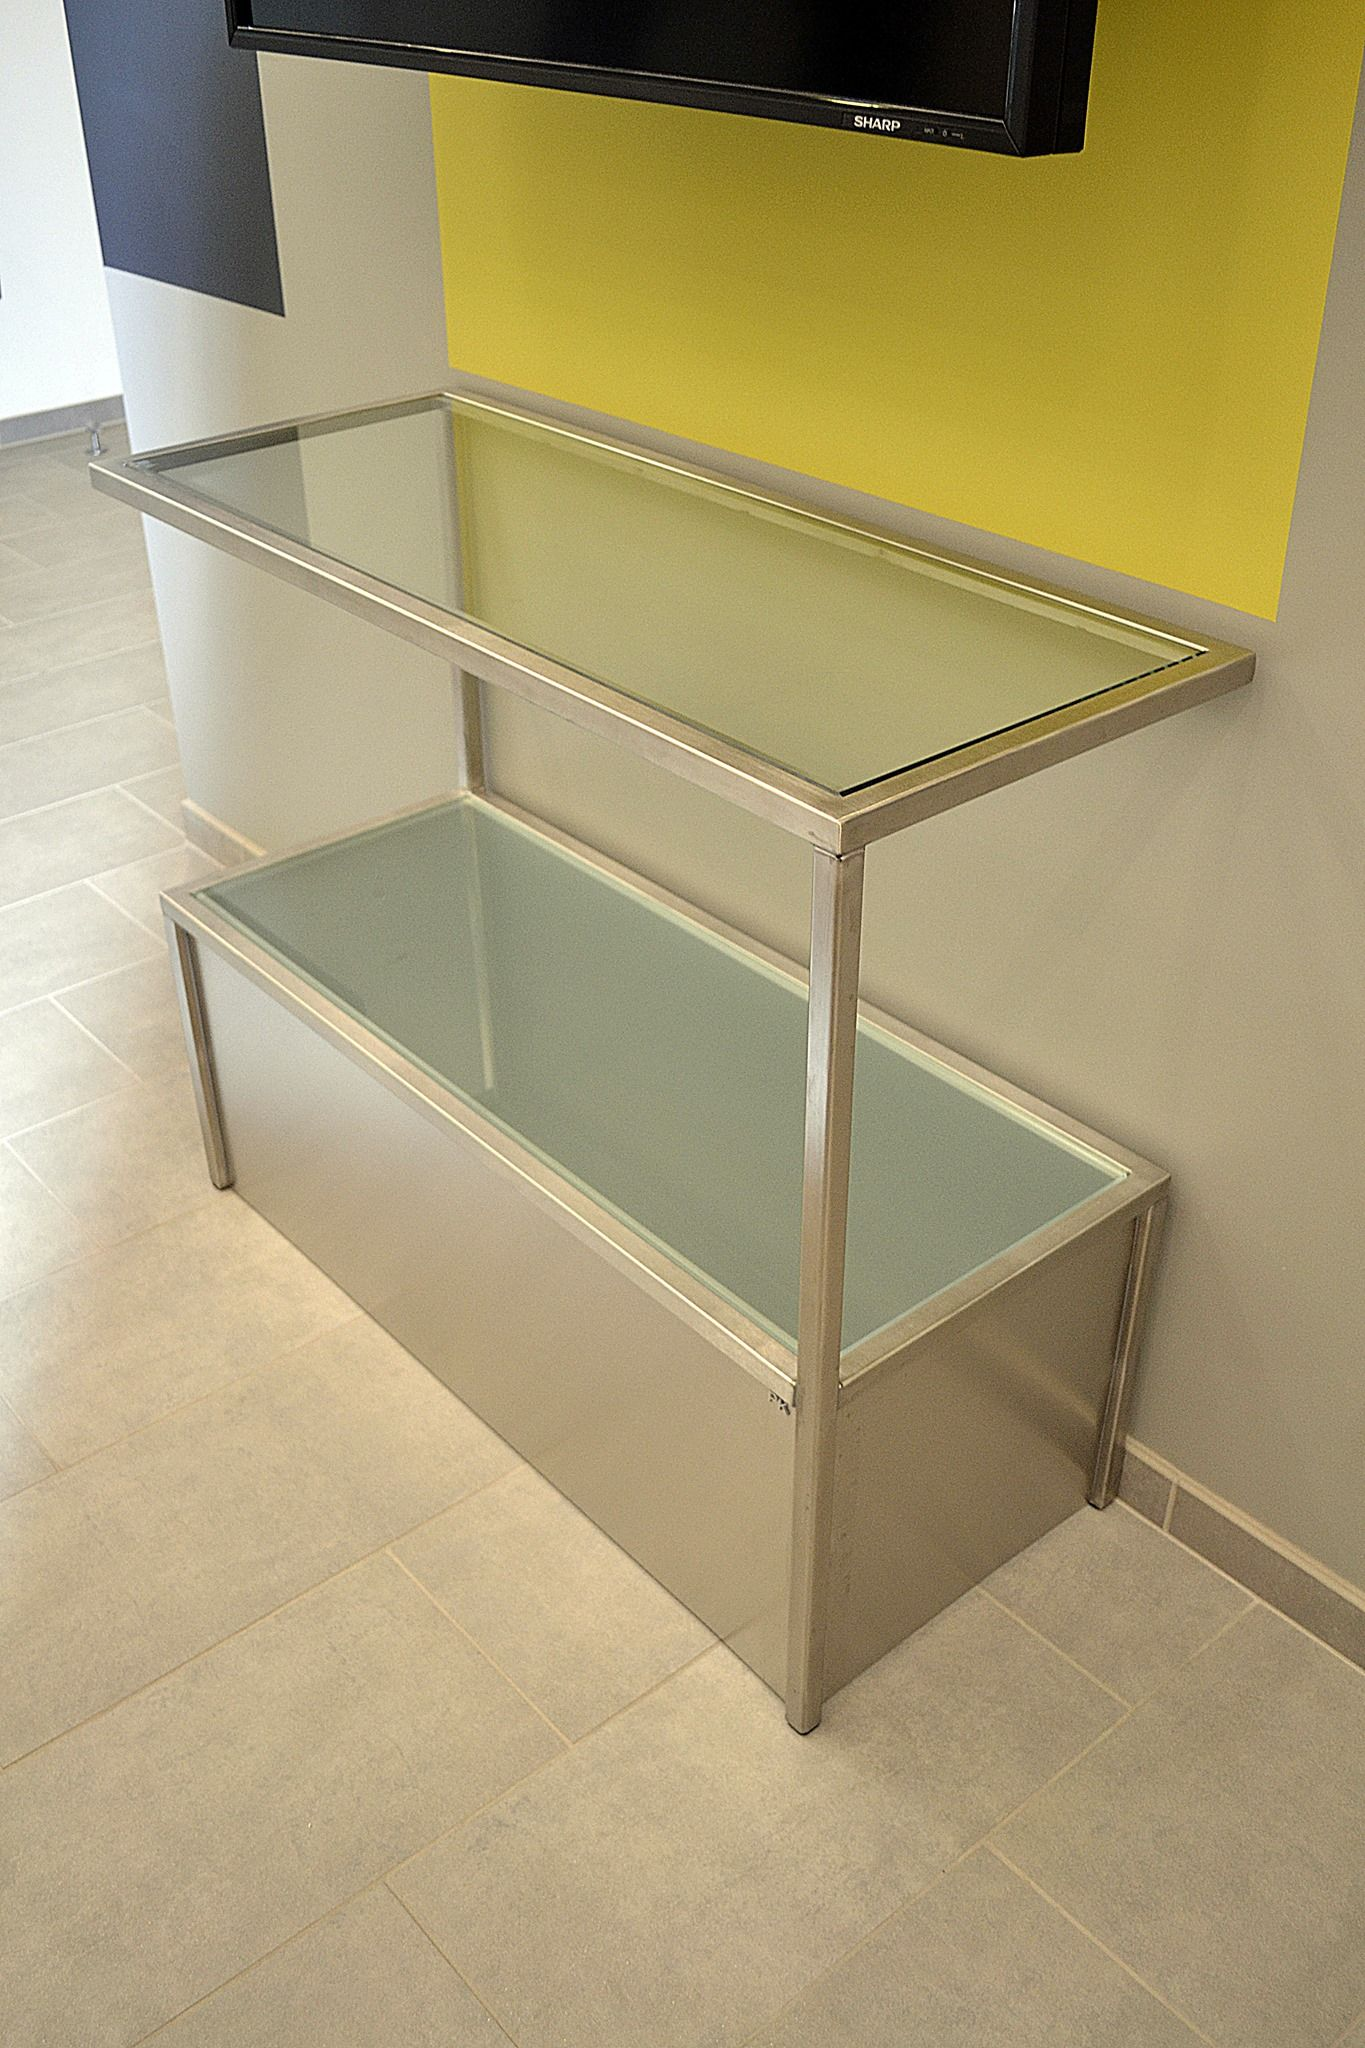 Zebra design stainless steel console table frosted glass bottom